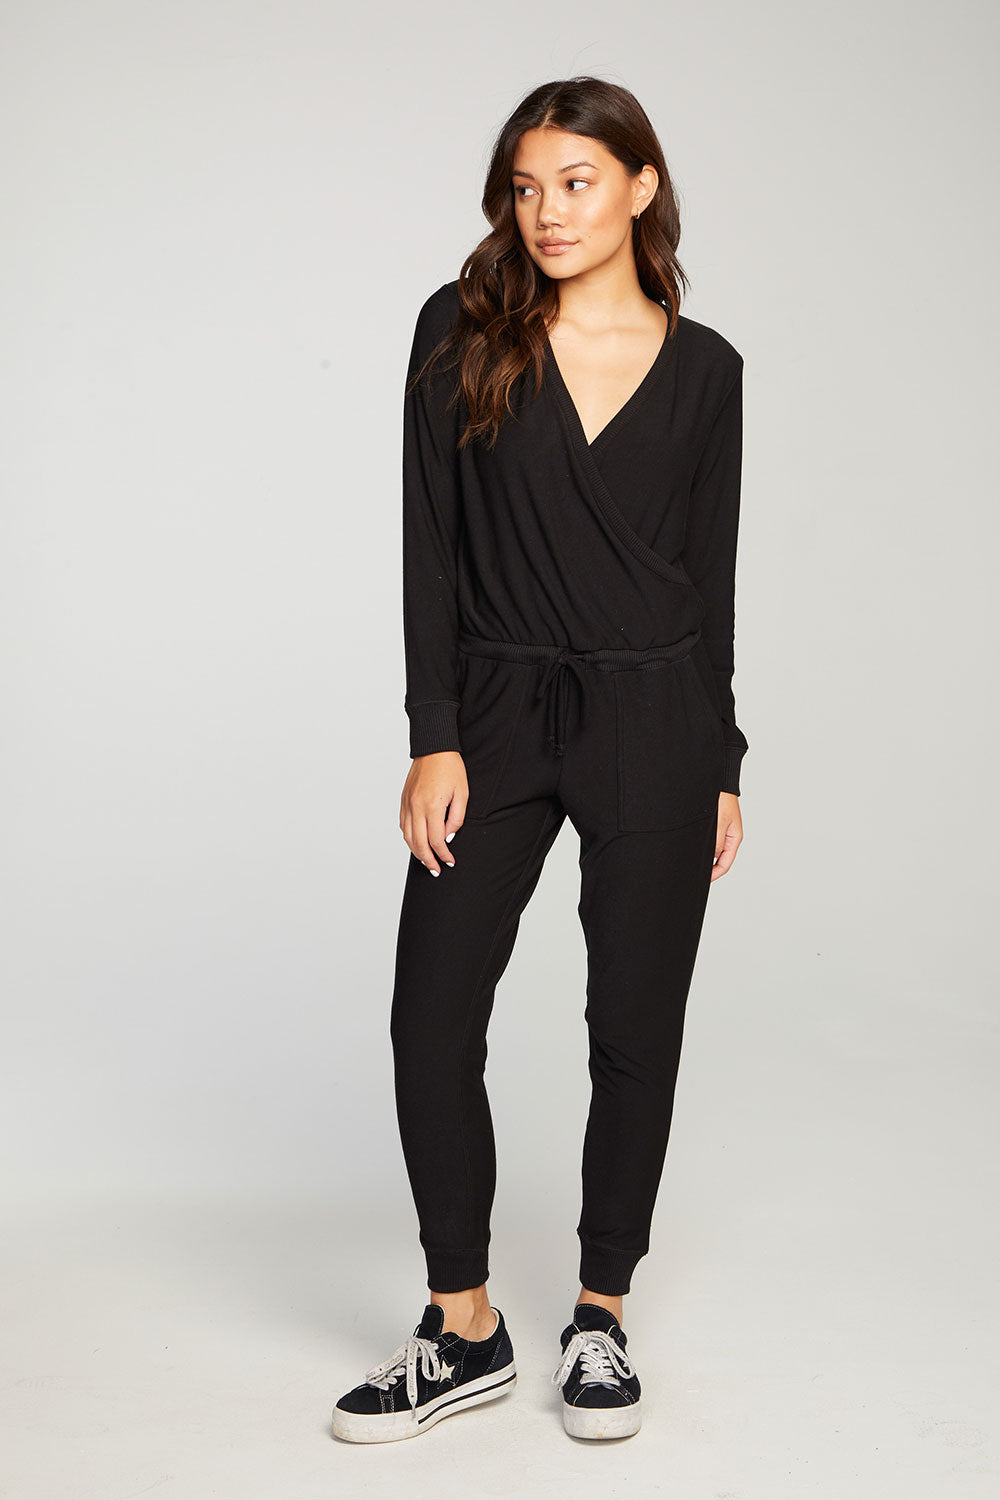 Cozy Knit Long Sleeve Surplice Jumpsuit WOMENS chaserbrand4.myshopify.com